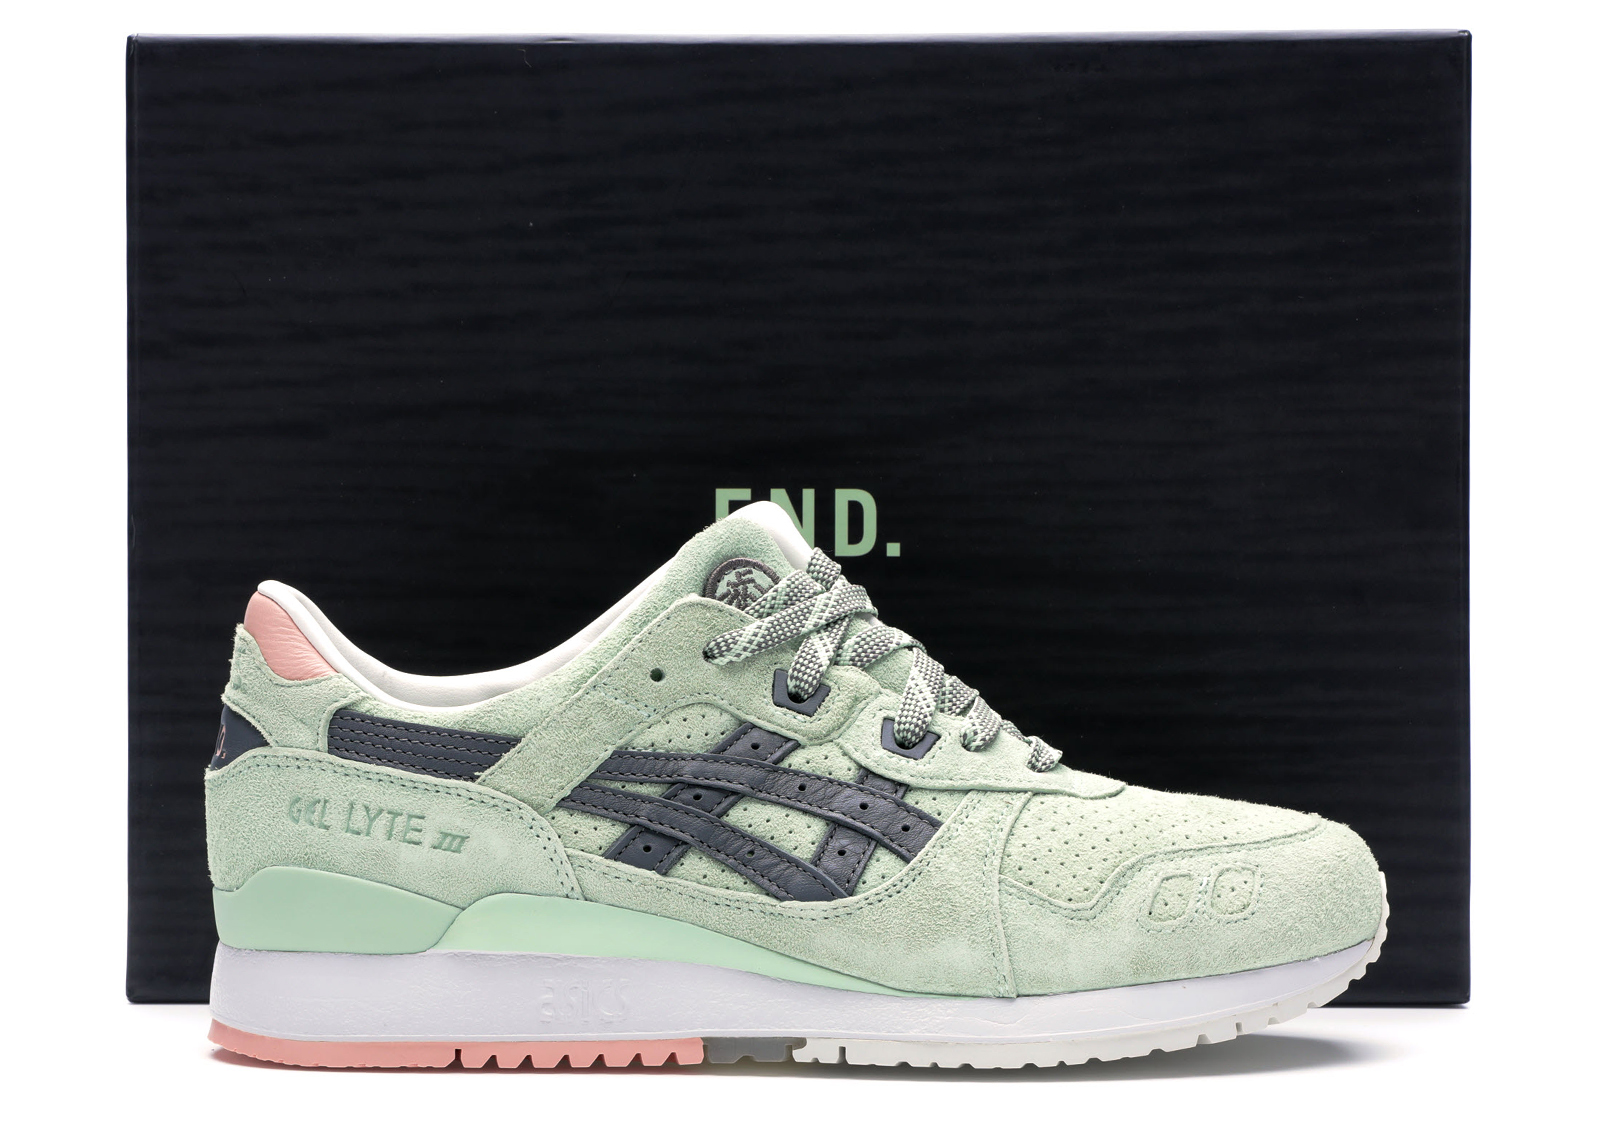 the gel lyte iii